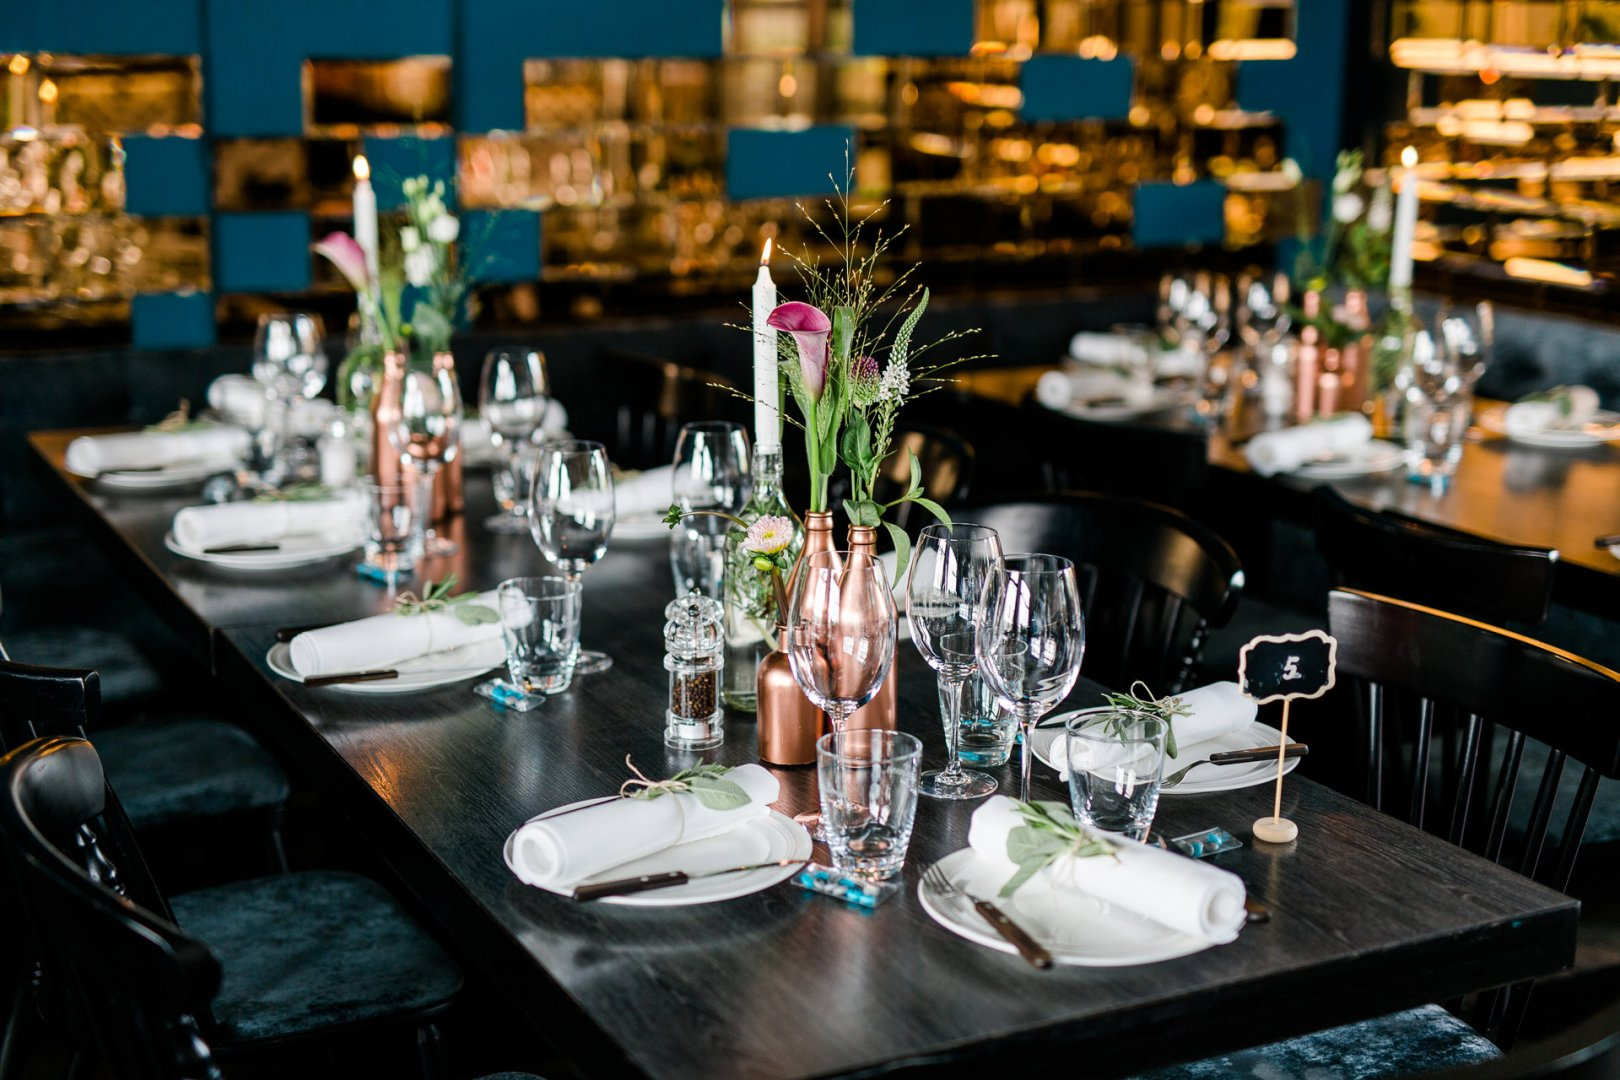 Rehearsal dinner Centrepiece Turquoise Table Restaurant Room Banquet Event Wedding reception Textile Flower Furniture Party Tablecloth Tableware Interior design Meal Plant Function hall Glass Ceremony Floristry